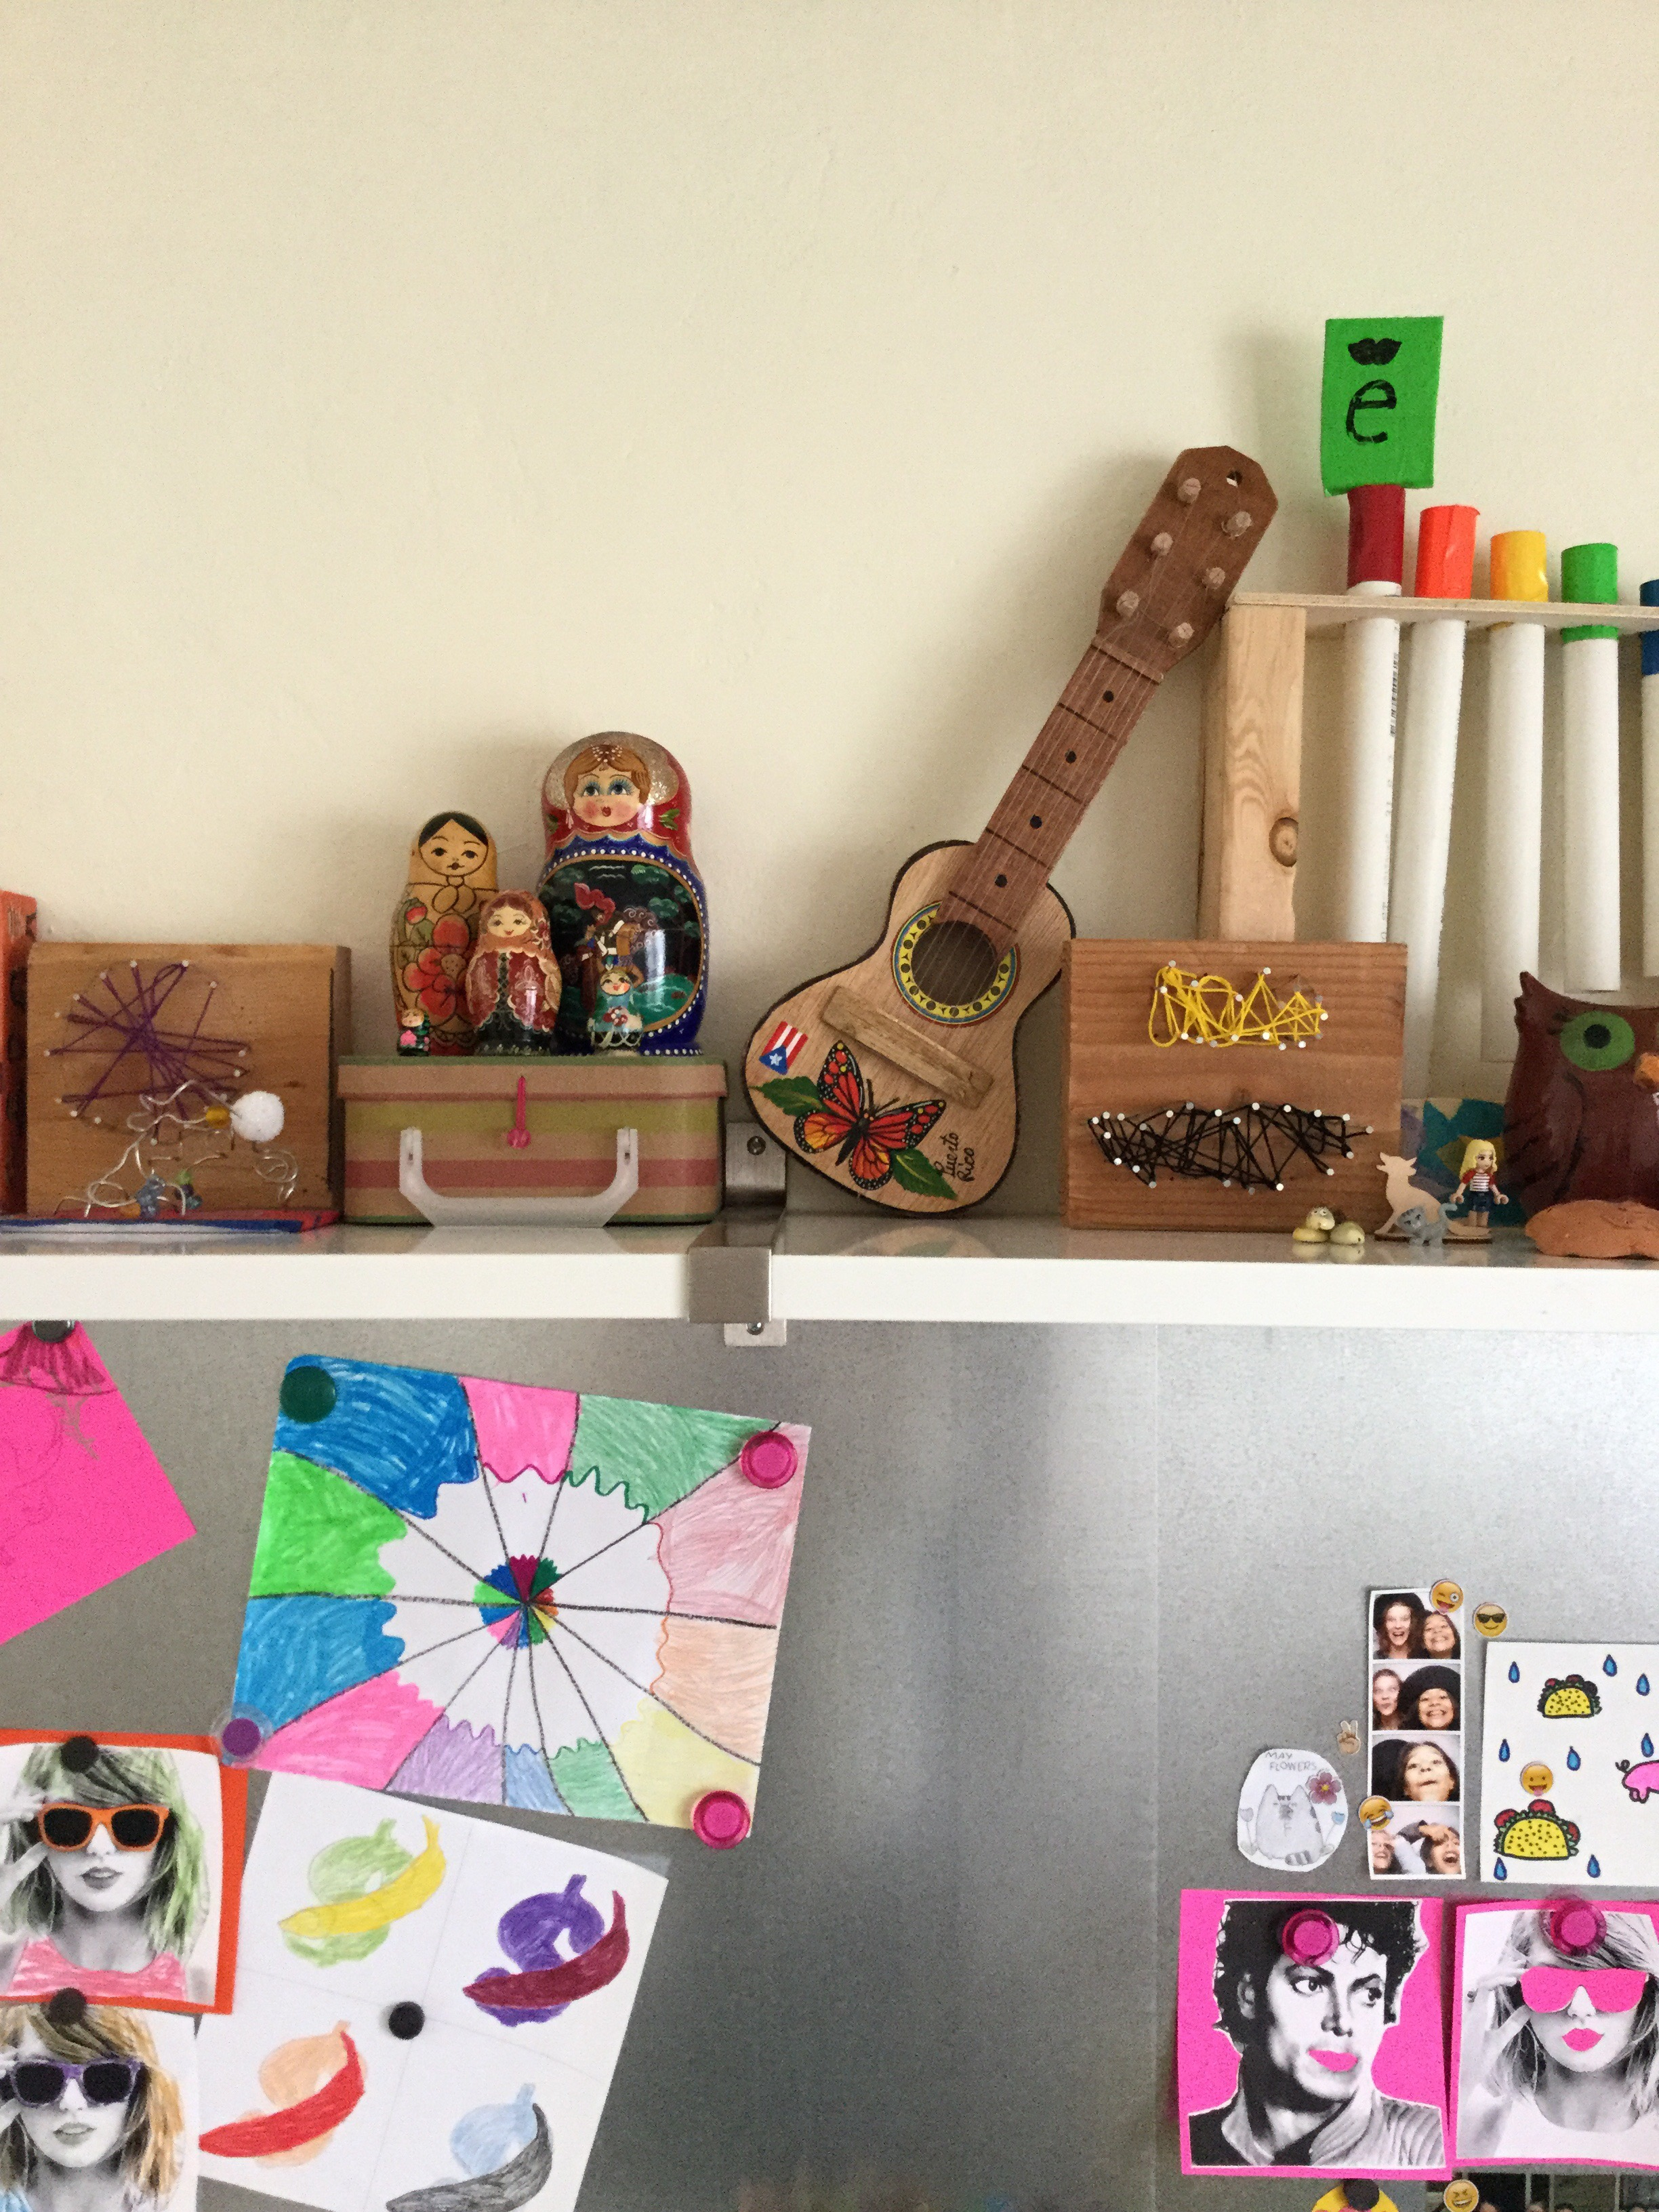 We love the girls mood board with bits and pieces from their travels and favorite places like the Crocker Art Museum.